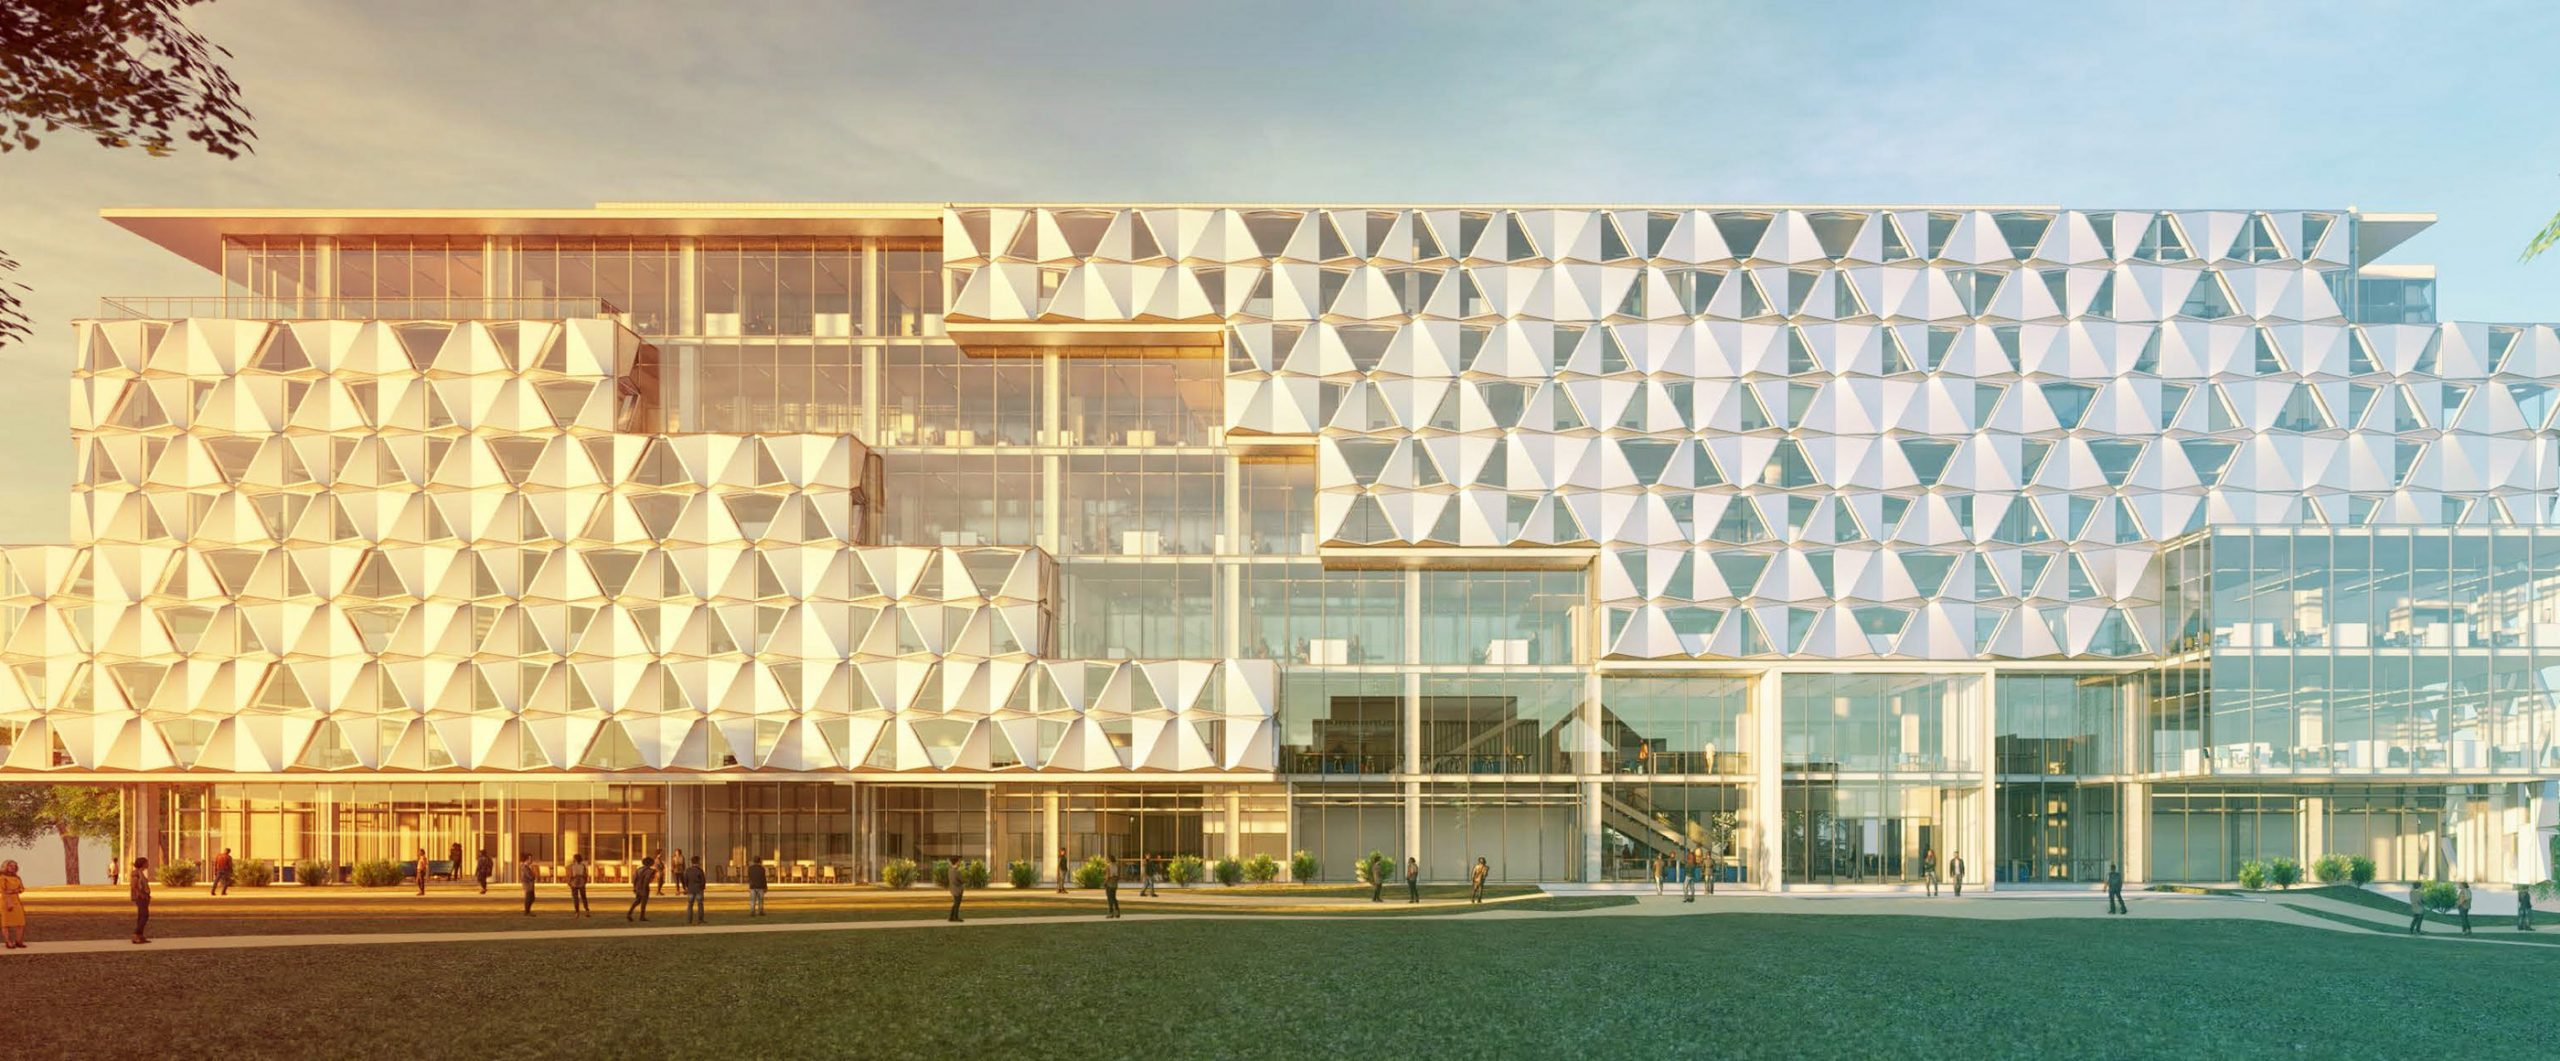 Malachowsky Hall for Data Science & Information Technology Rendering